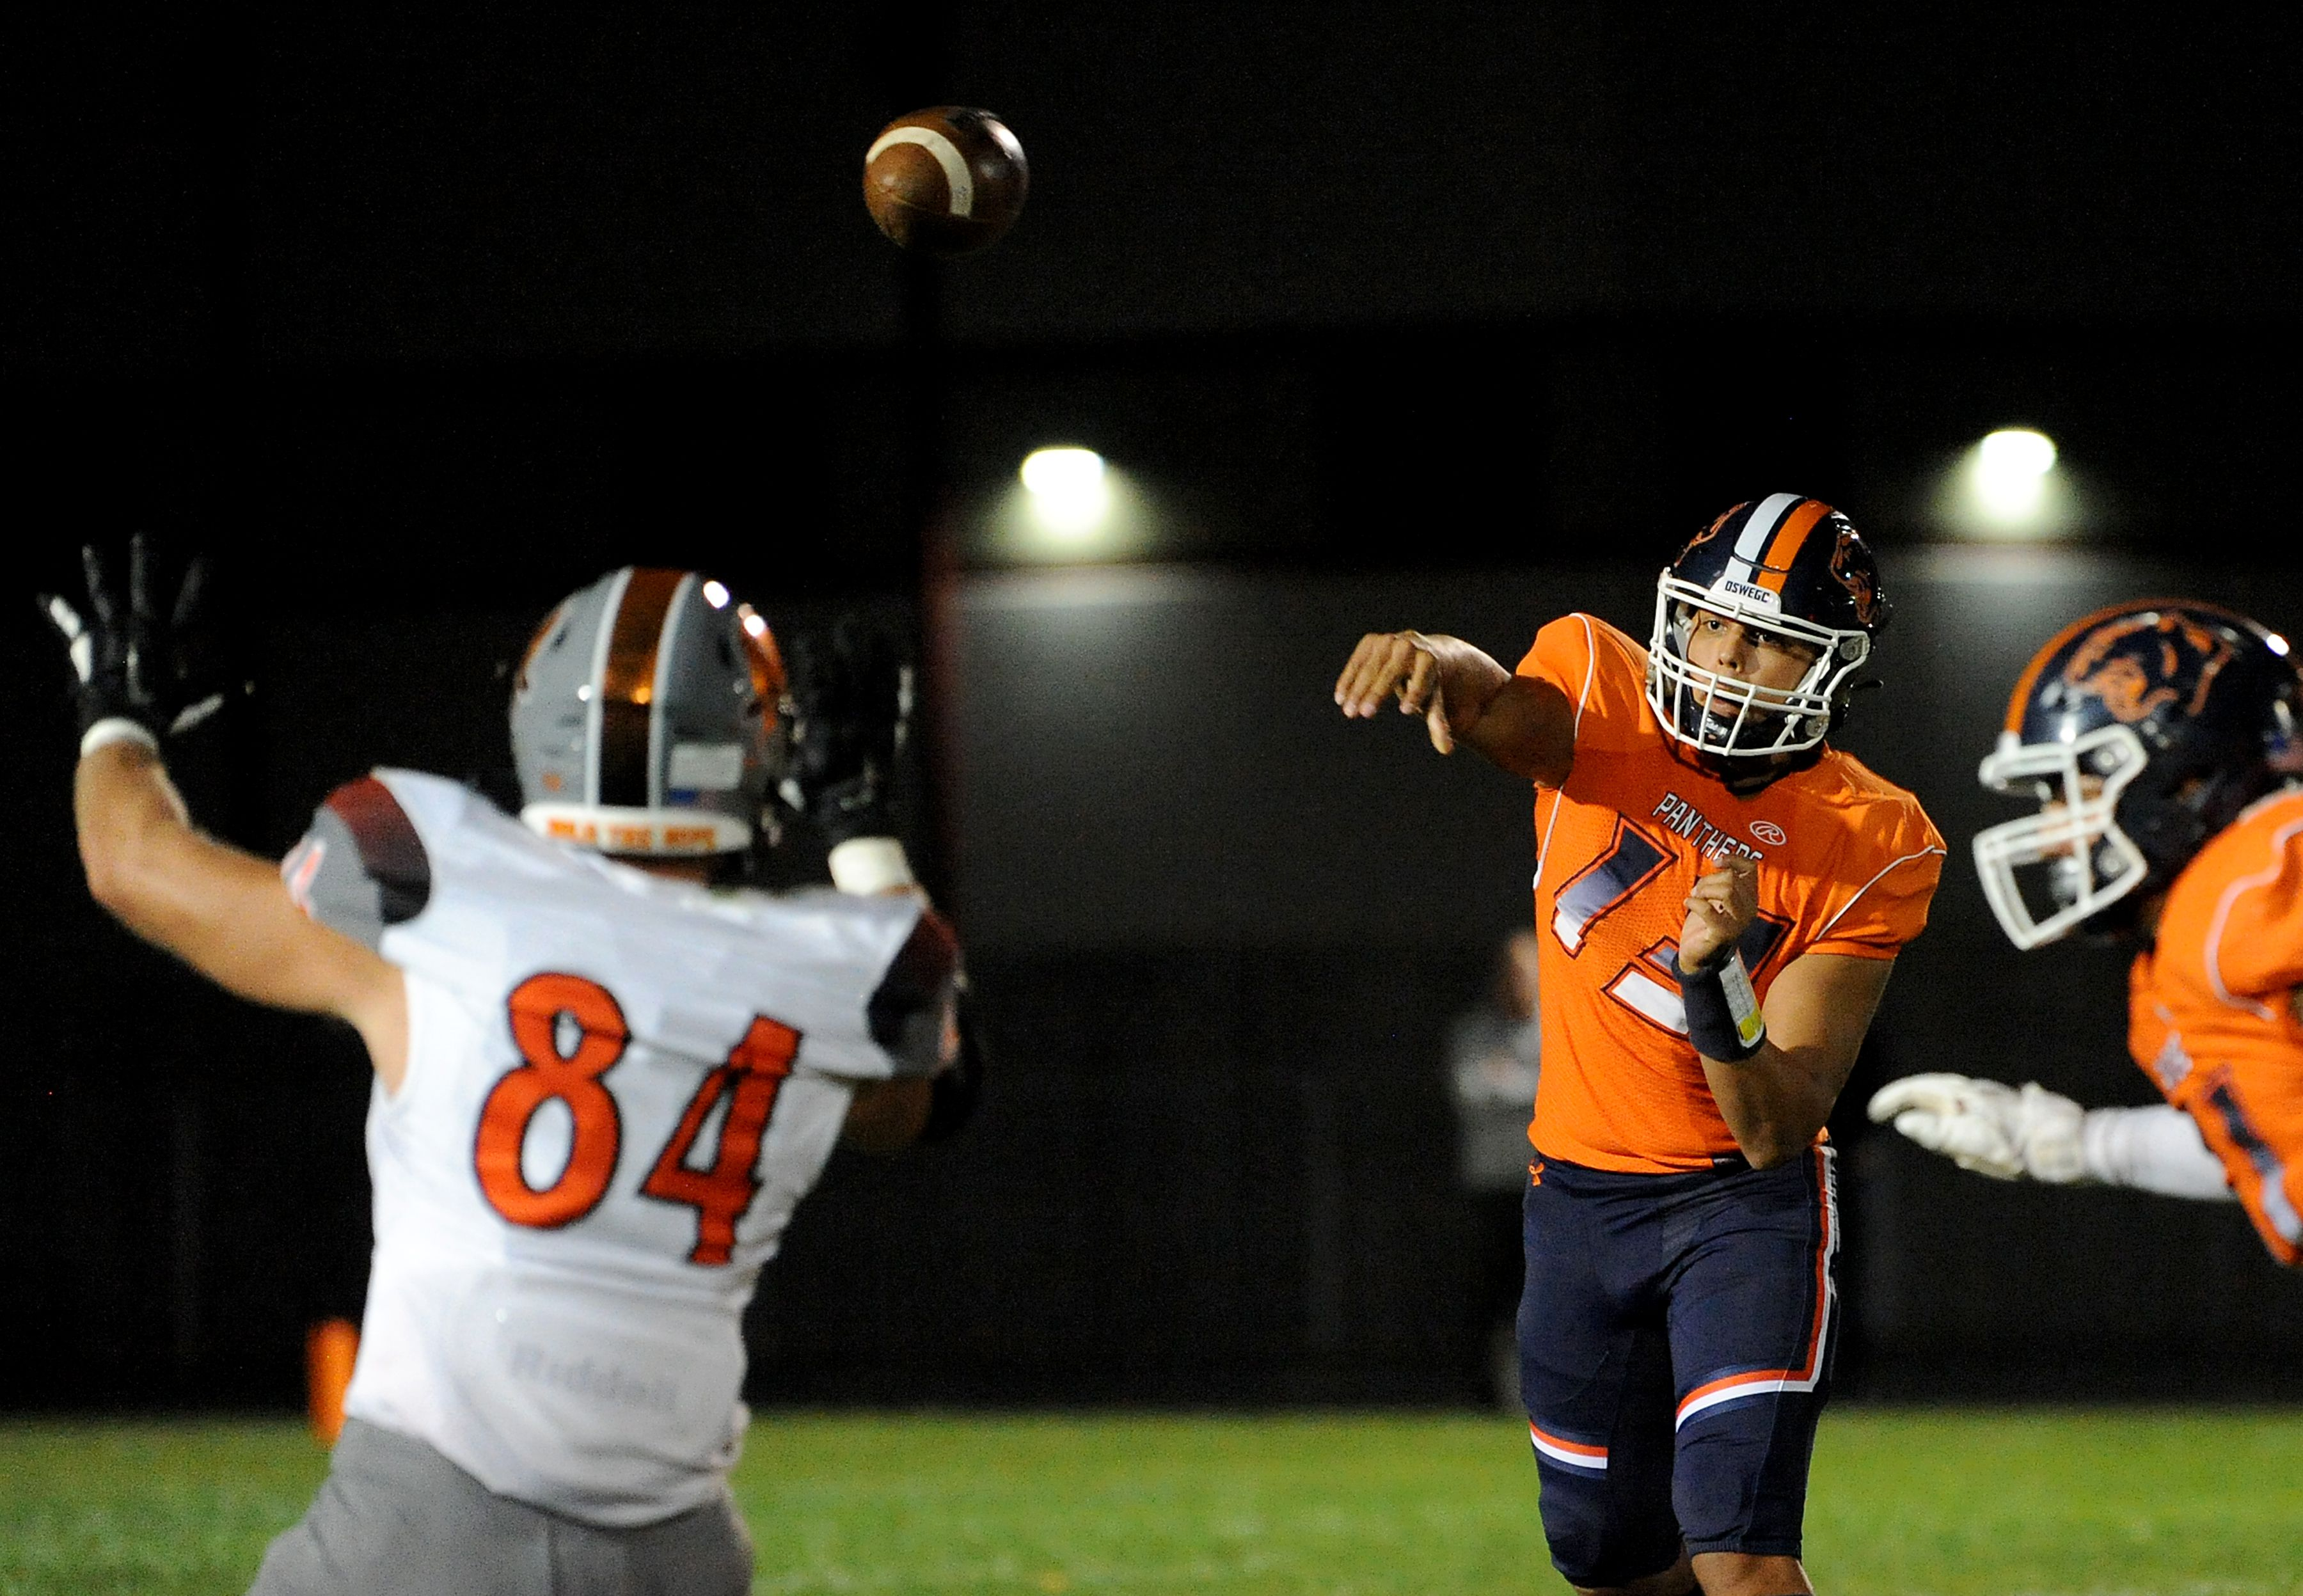 Oswego quarterback Cruz Jr Ibarra (13) tosses pass in the direction of Minooka defensive lineman Will DeBold (84) during a varsity football game at Oswego High School on Friday.